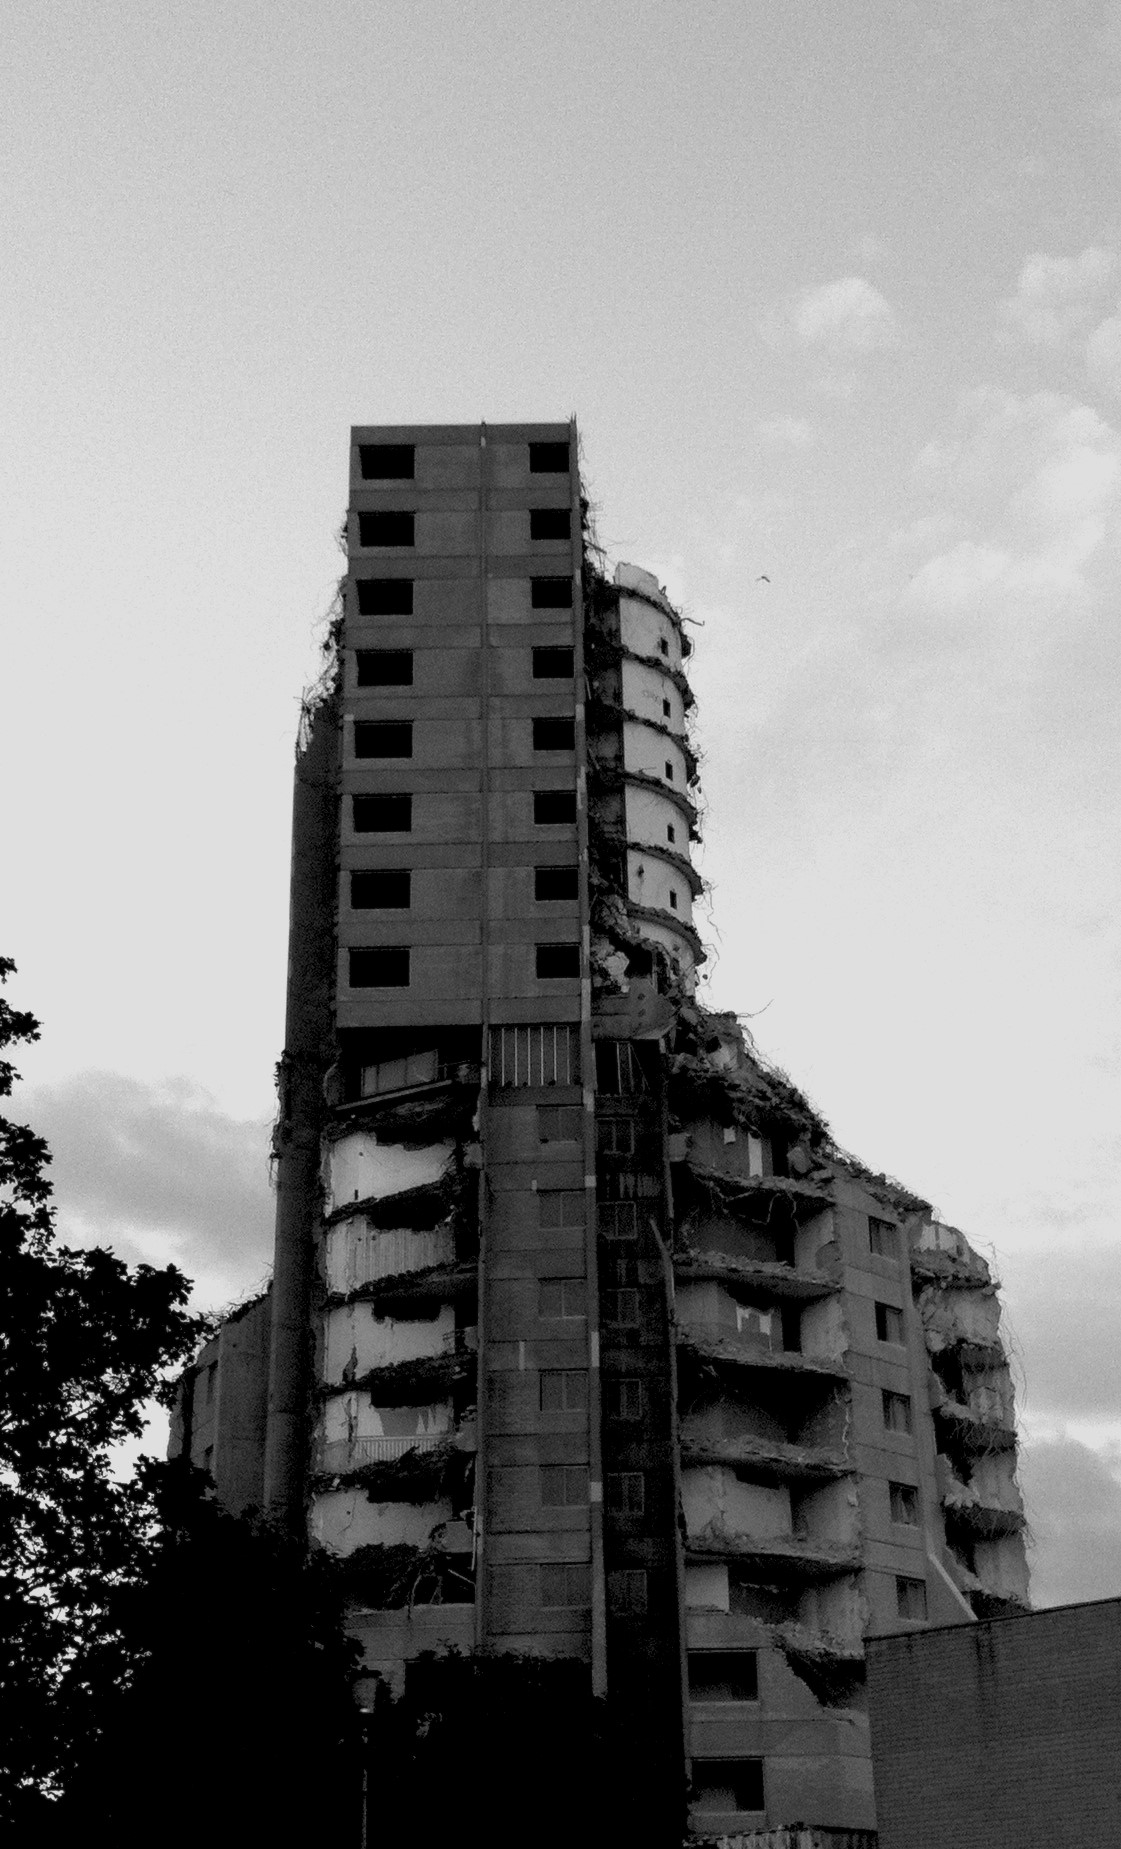 High Rise: a Homage to North East England Brutalism